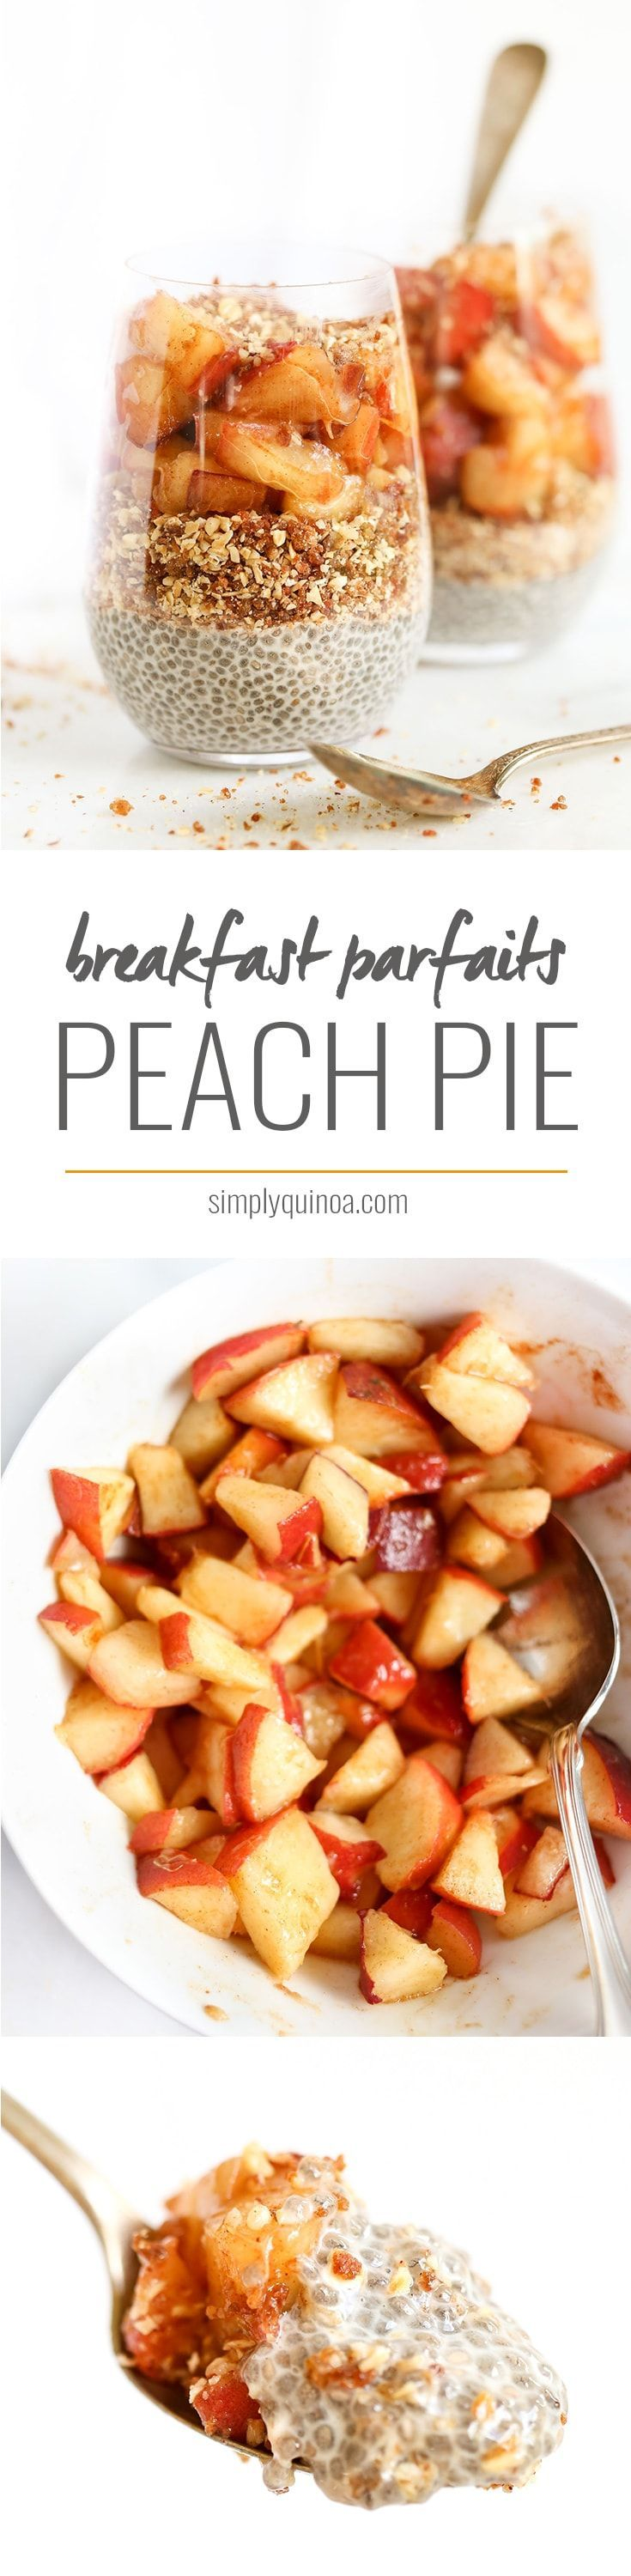 The ultimate way to start your day >> PEACH PIE BREAKFAST PARFAITS. All clean eating ingredients are used for this healthy breakfast recipe. Pin now to make later this week!